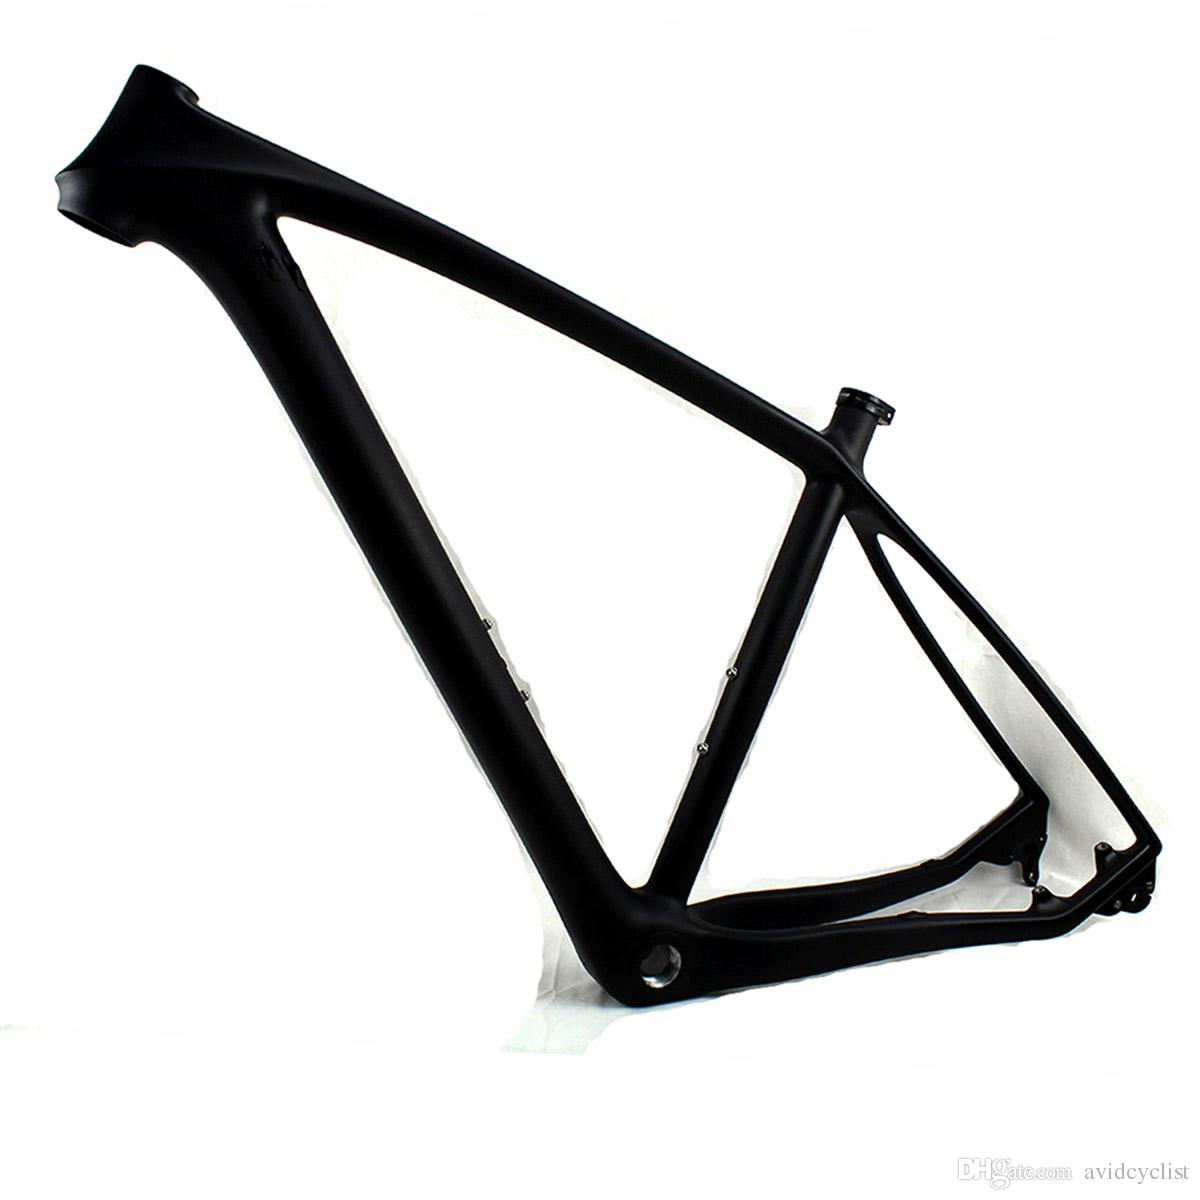 29er carbon fiber MTB bike frame 29 mountain bicycle frames thru axle 142*12mm and QR 135*9mm compatible BB BSA BB68 3K matt